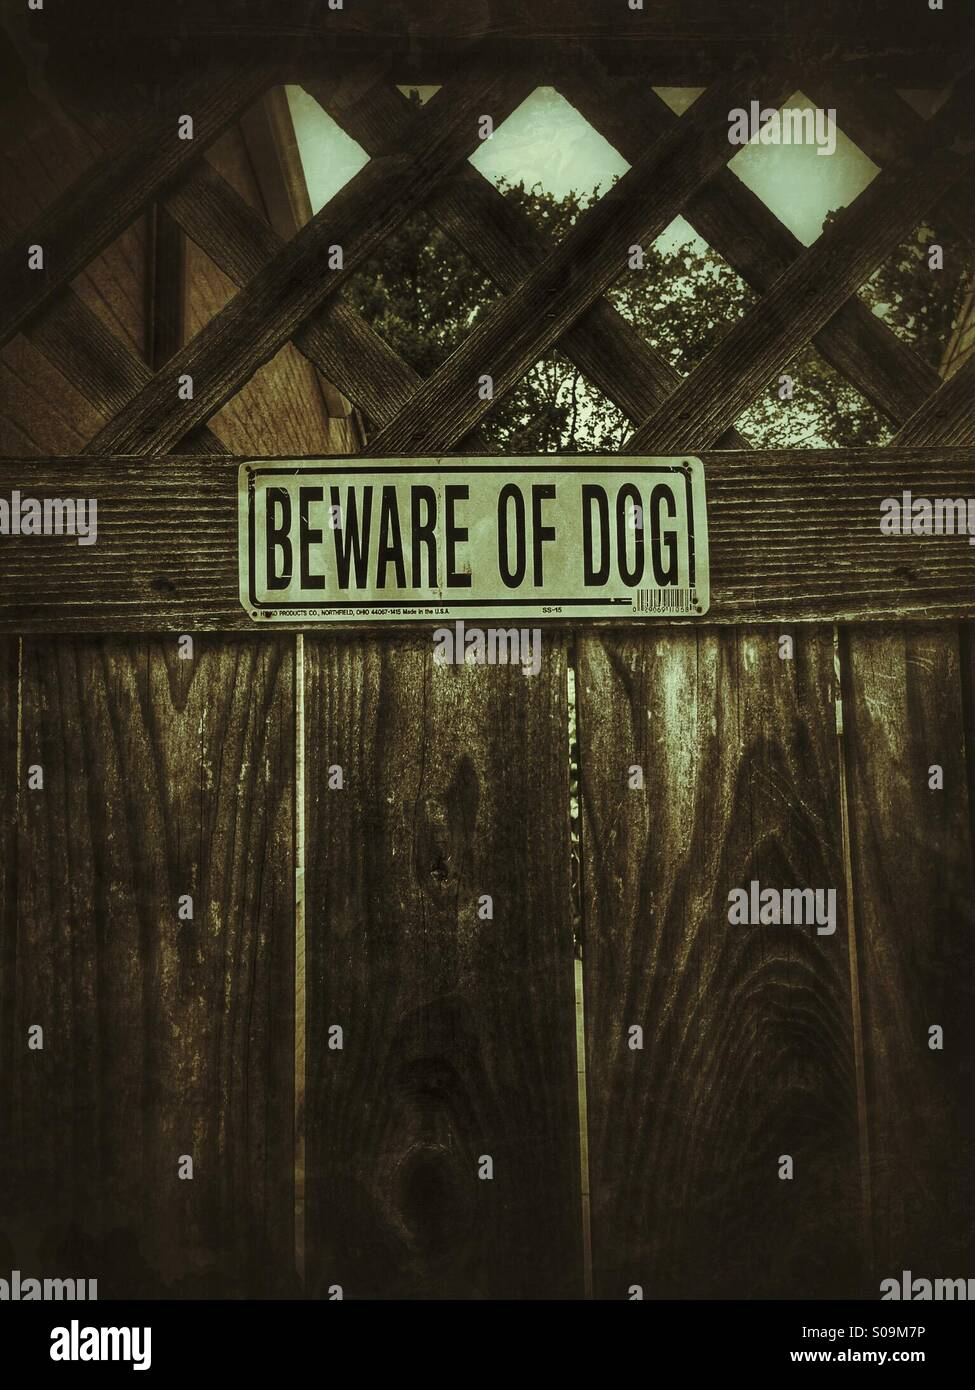 Beware of dog sign on gate. - Stock Image